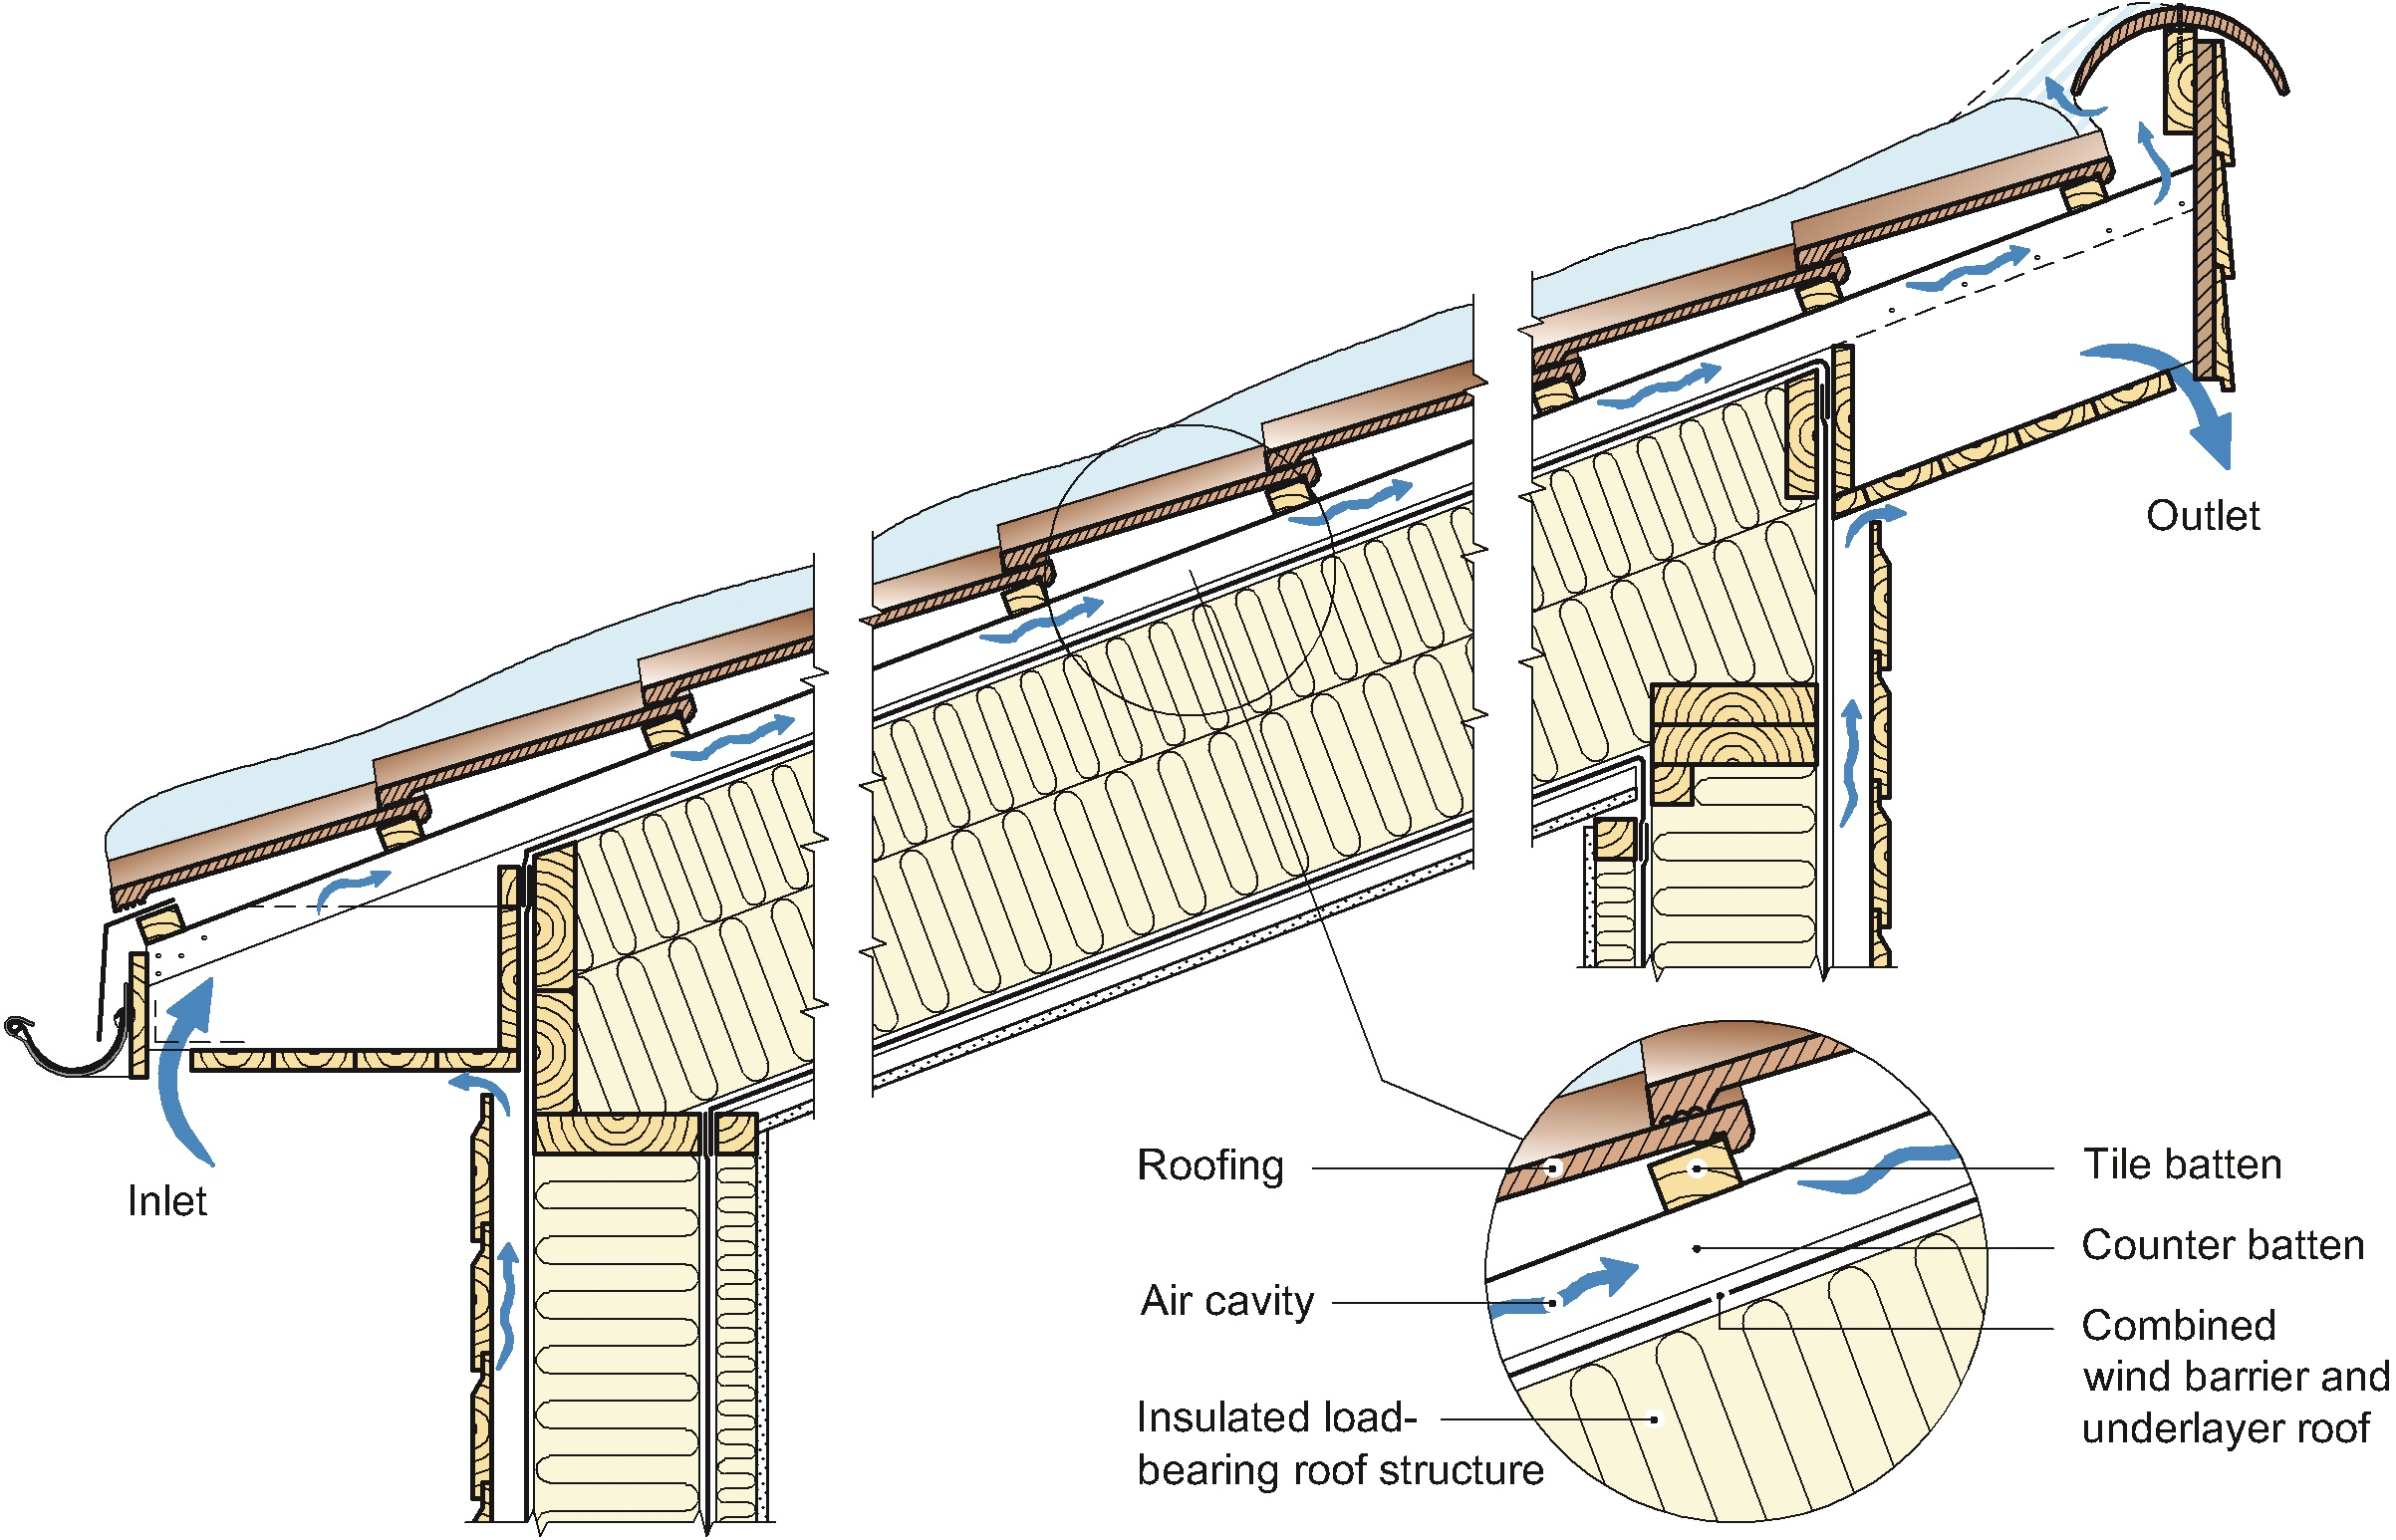 A ventilated lean‐to roof structure with snow on the roof. The snow may reduce the air flow through the opening in the upper air cavity opening. The structure has the following build up from the cold face of the structure: roofing, ventilated air cavity, combined wind barrier and underlayer roof and an insulated load‐bearing roof structure closed by the vapour retarder and the ceiling at the interior face.